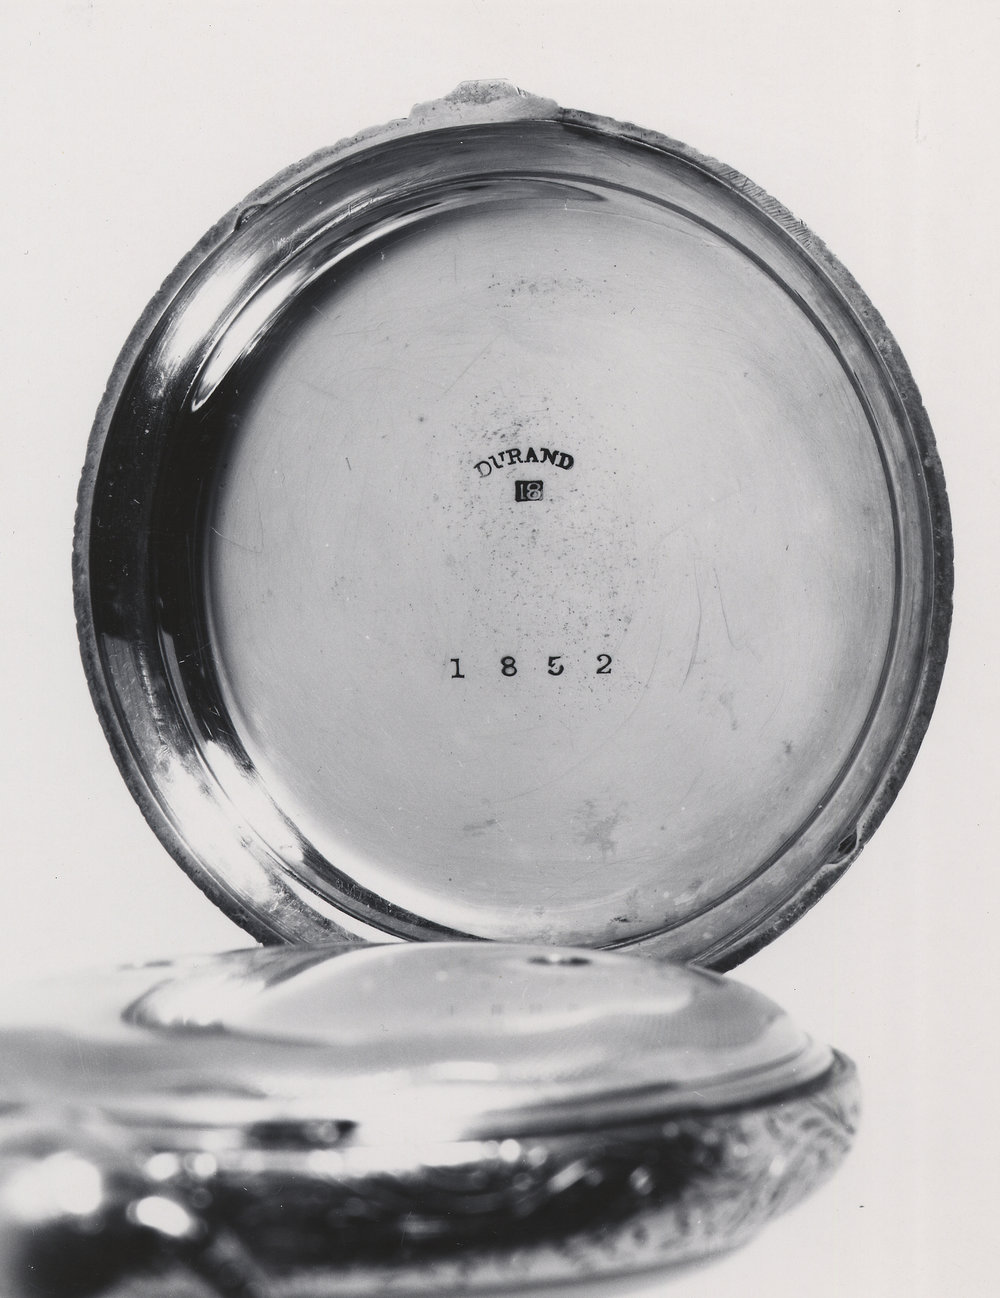 American Watch Company Prototype from 1852 mark.jpg